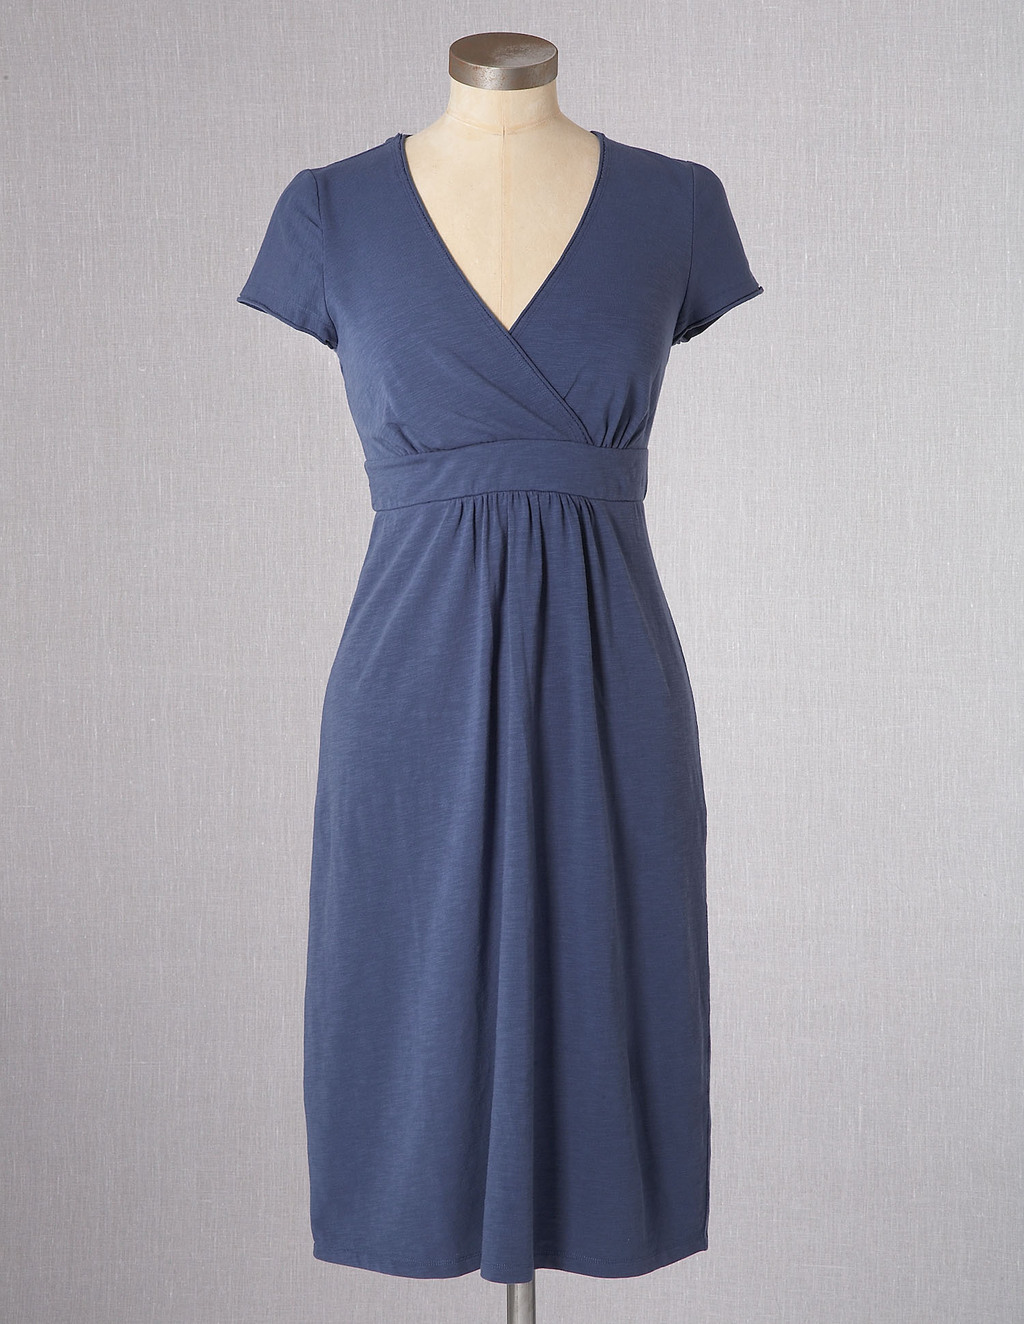 Casual Jersey Dress - style: shift; neckline: v-neck; pattern: plain; predominant colour: royal blue; occasions: casual; length: on the knee; fit: soft a-line; fibres: cotton - stretch; waist detail: narrow waistband; sleeve length: short sleeve; sleeve style: standard; pattern type: fabric; texture group: other - light to midweight; season: s/s 2013